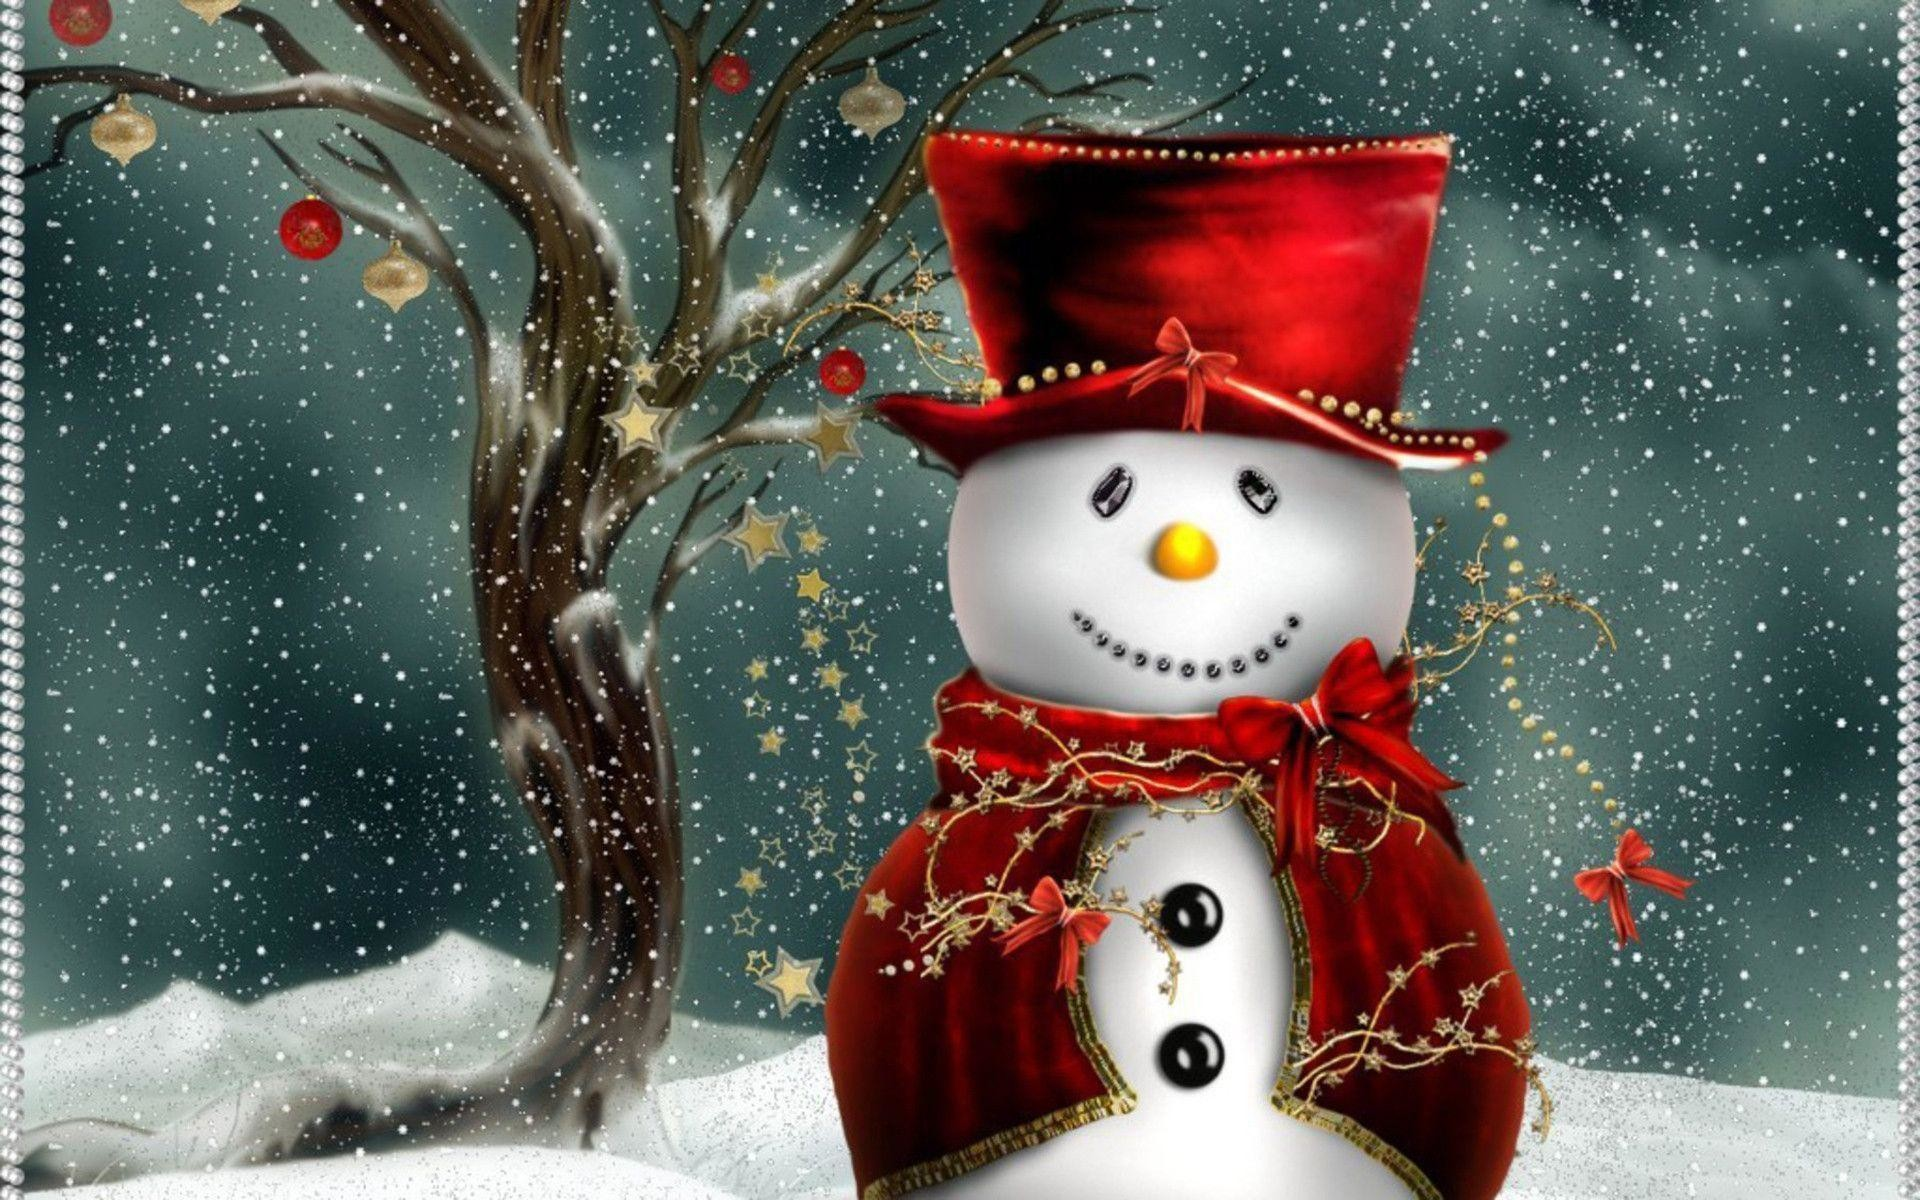 1920x1200 Cute Christmas Wallpaper | Wallpapers9